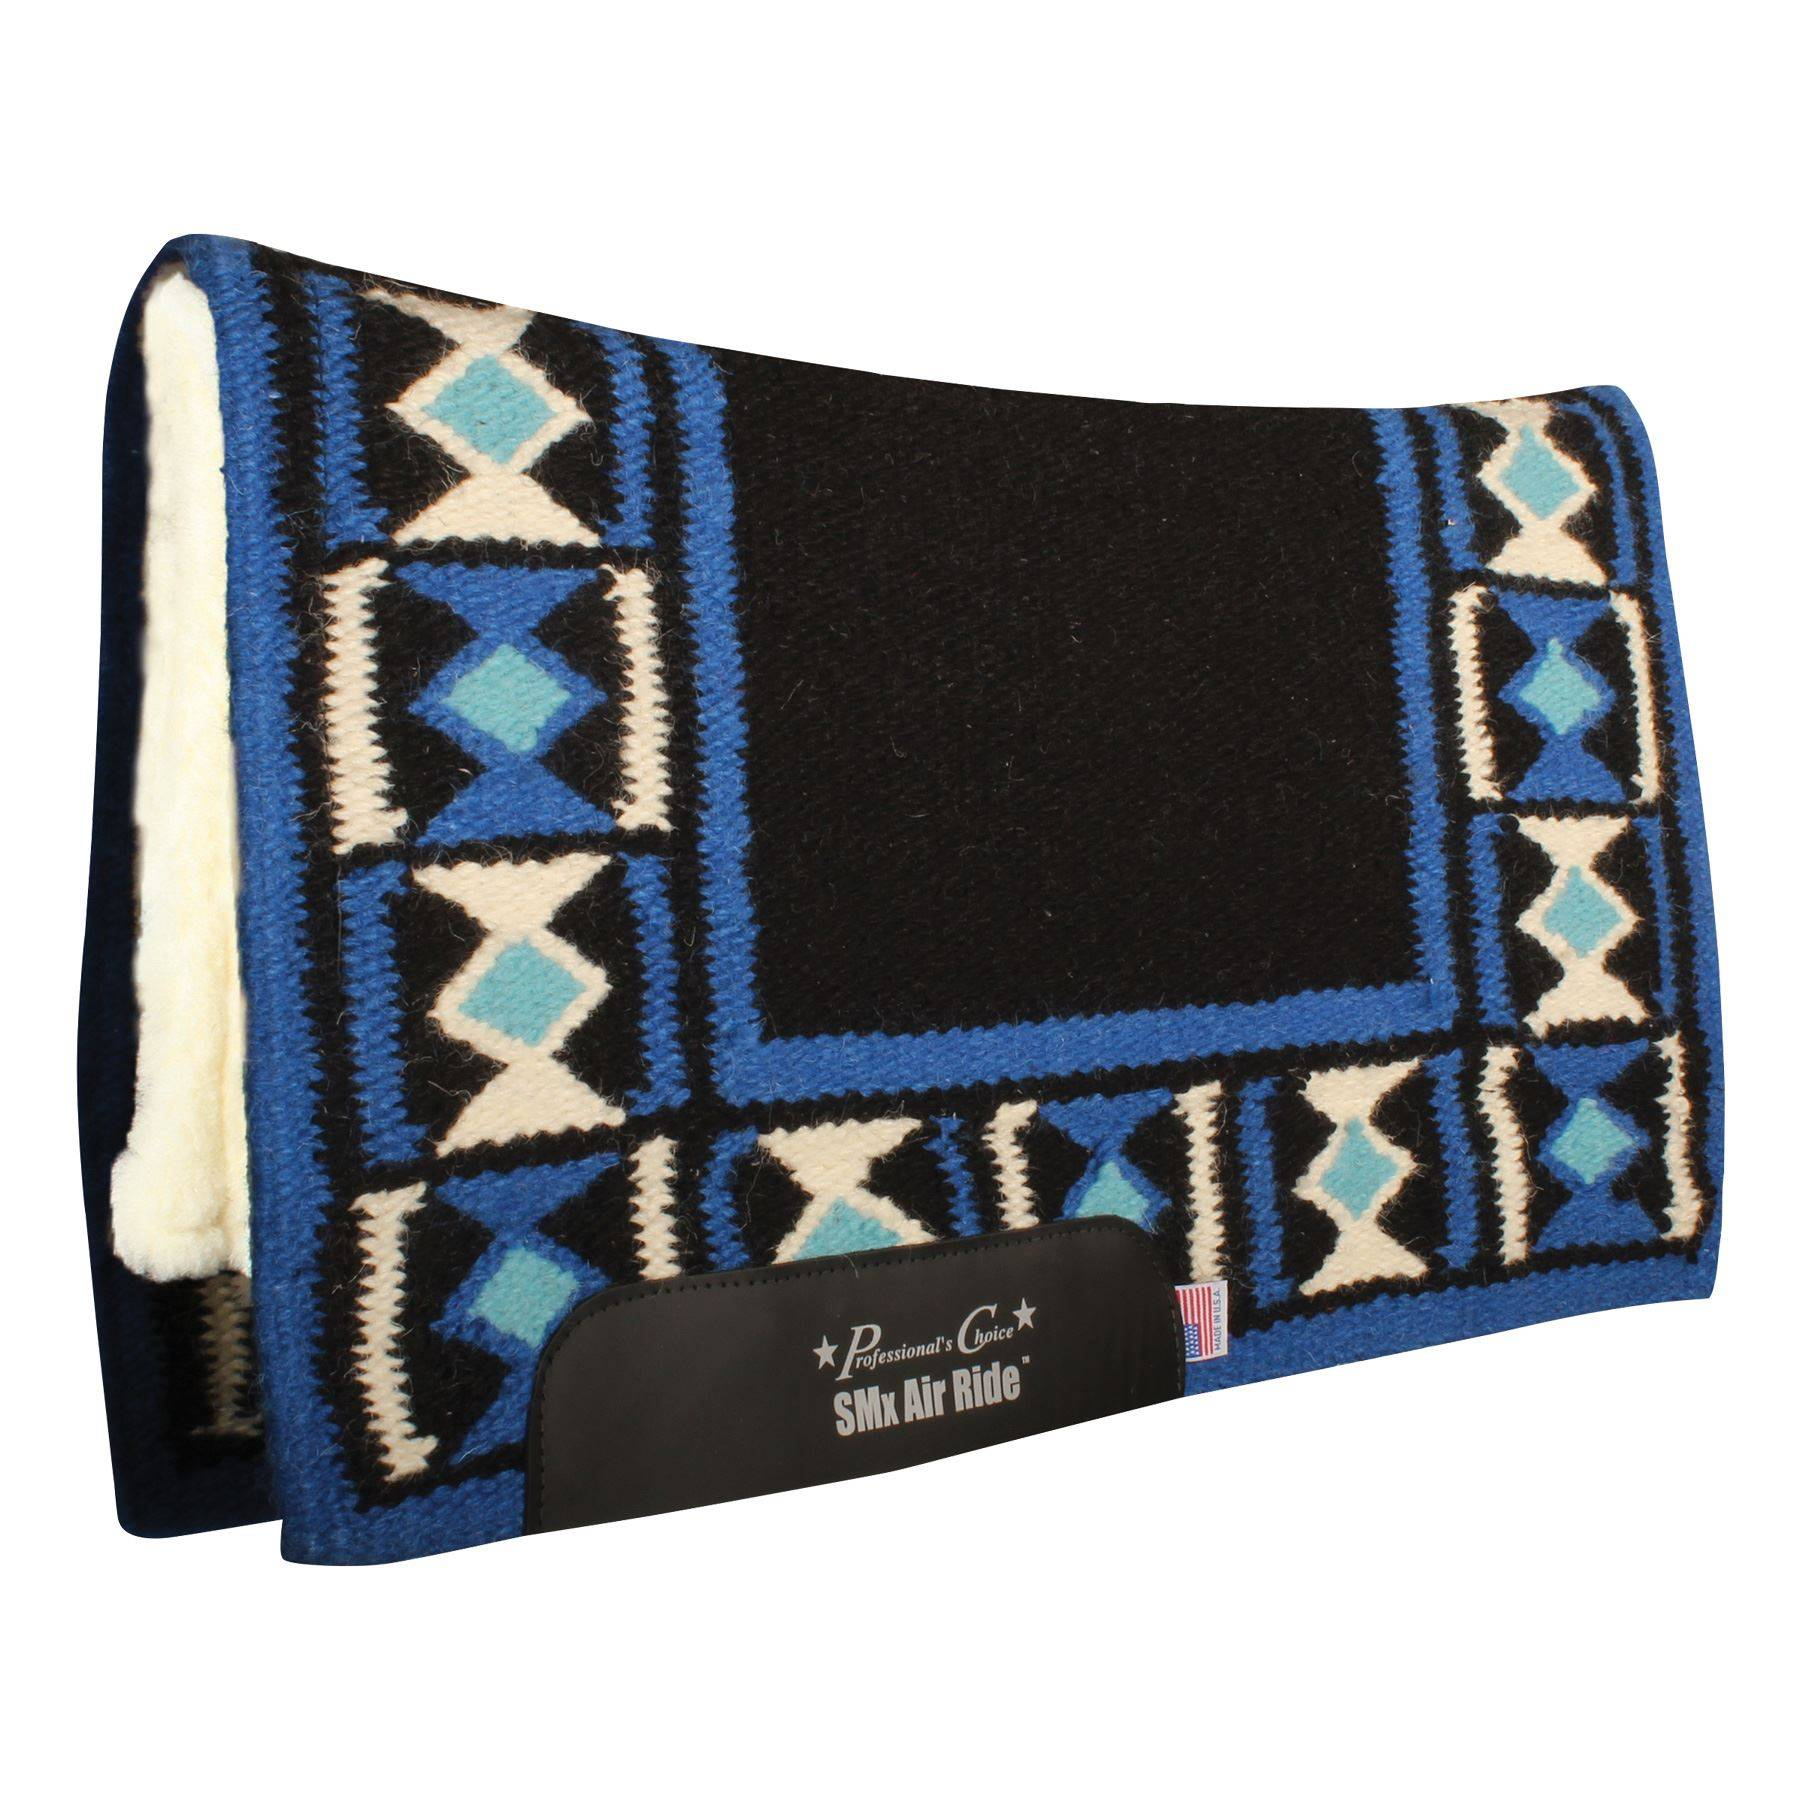 Professional's Choice® Comfort-Fit SMx Air Ride™ Hourglass Western Saddle Pad